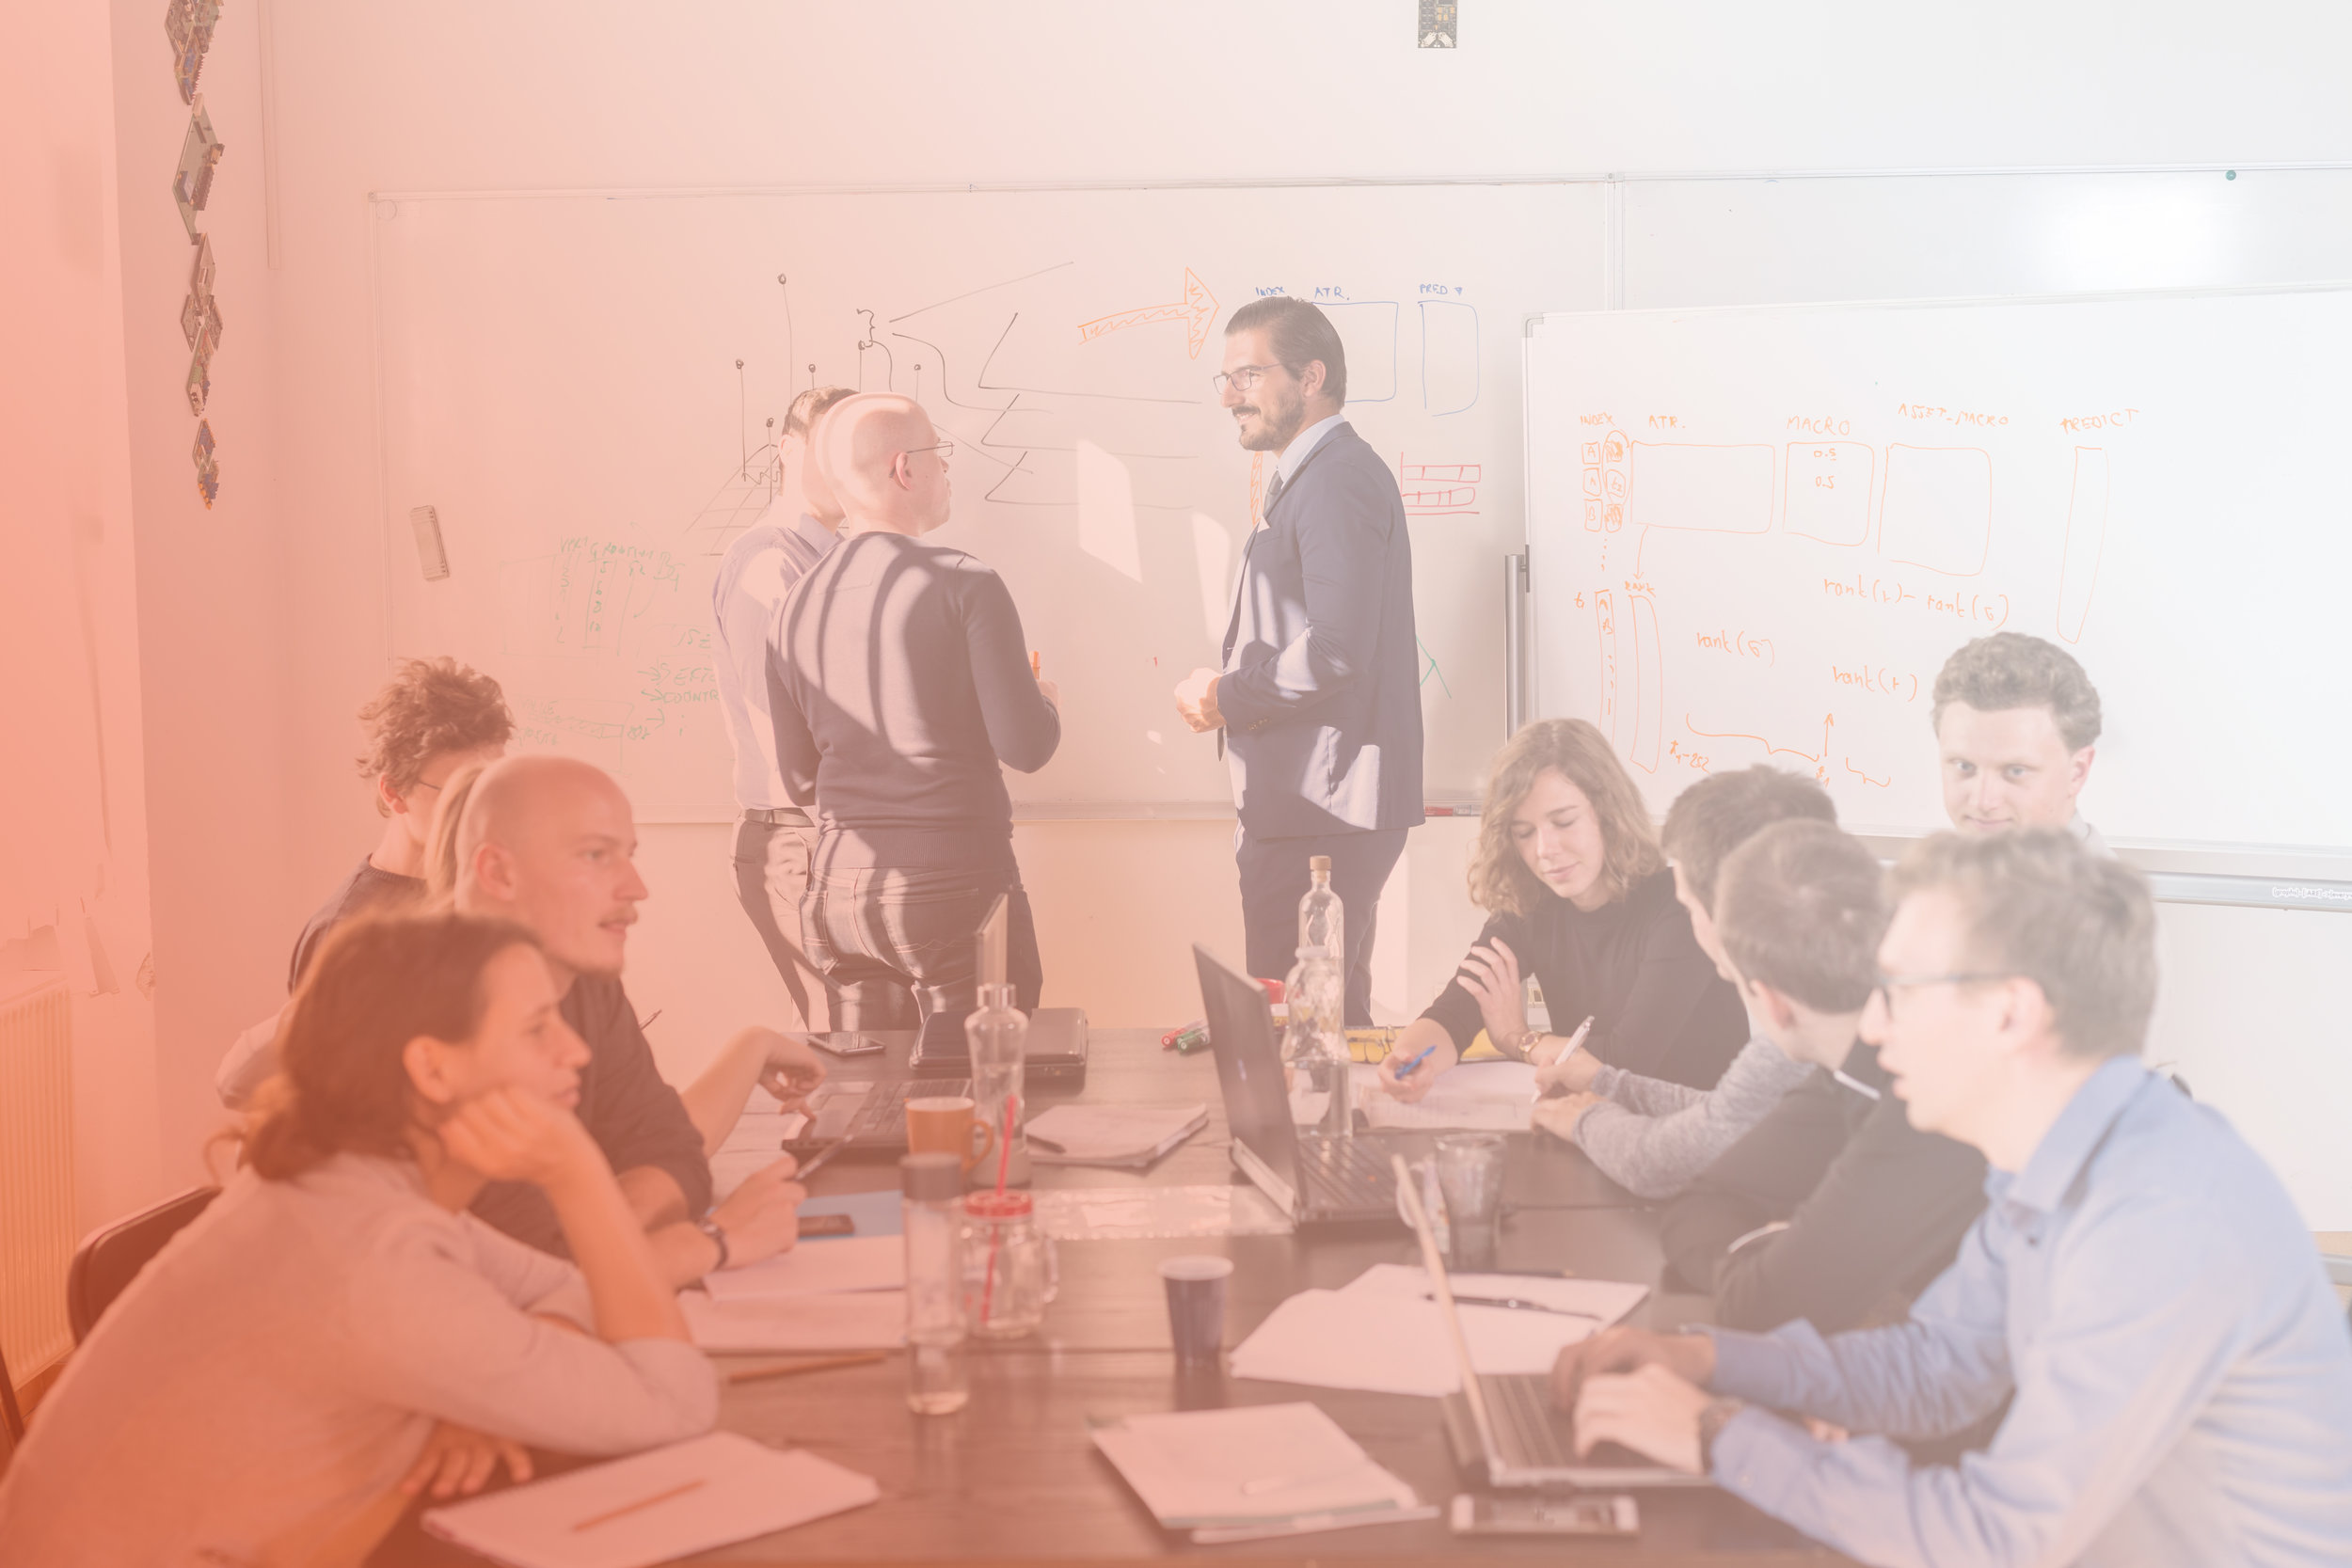 Digital Transformation Workshops - After an initial gathering of information, we design custom, multi-day workshops that define what digital transformation and innovation looks like for your business.